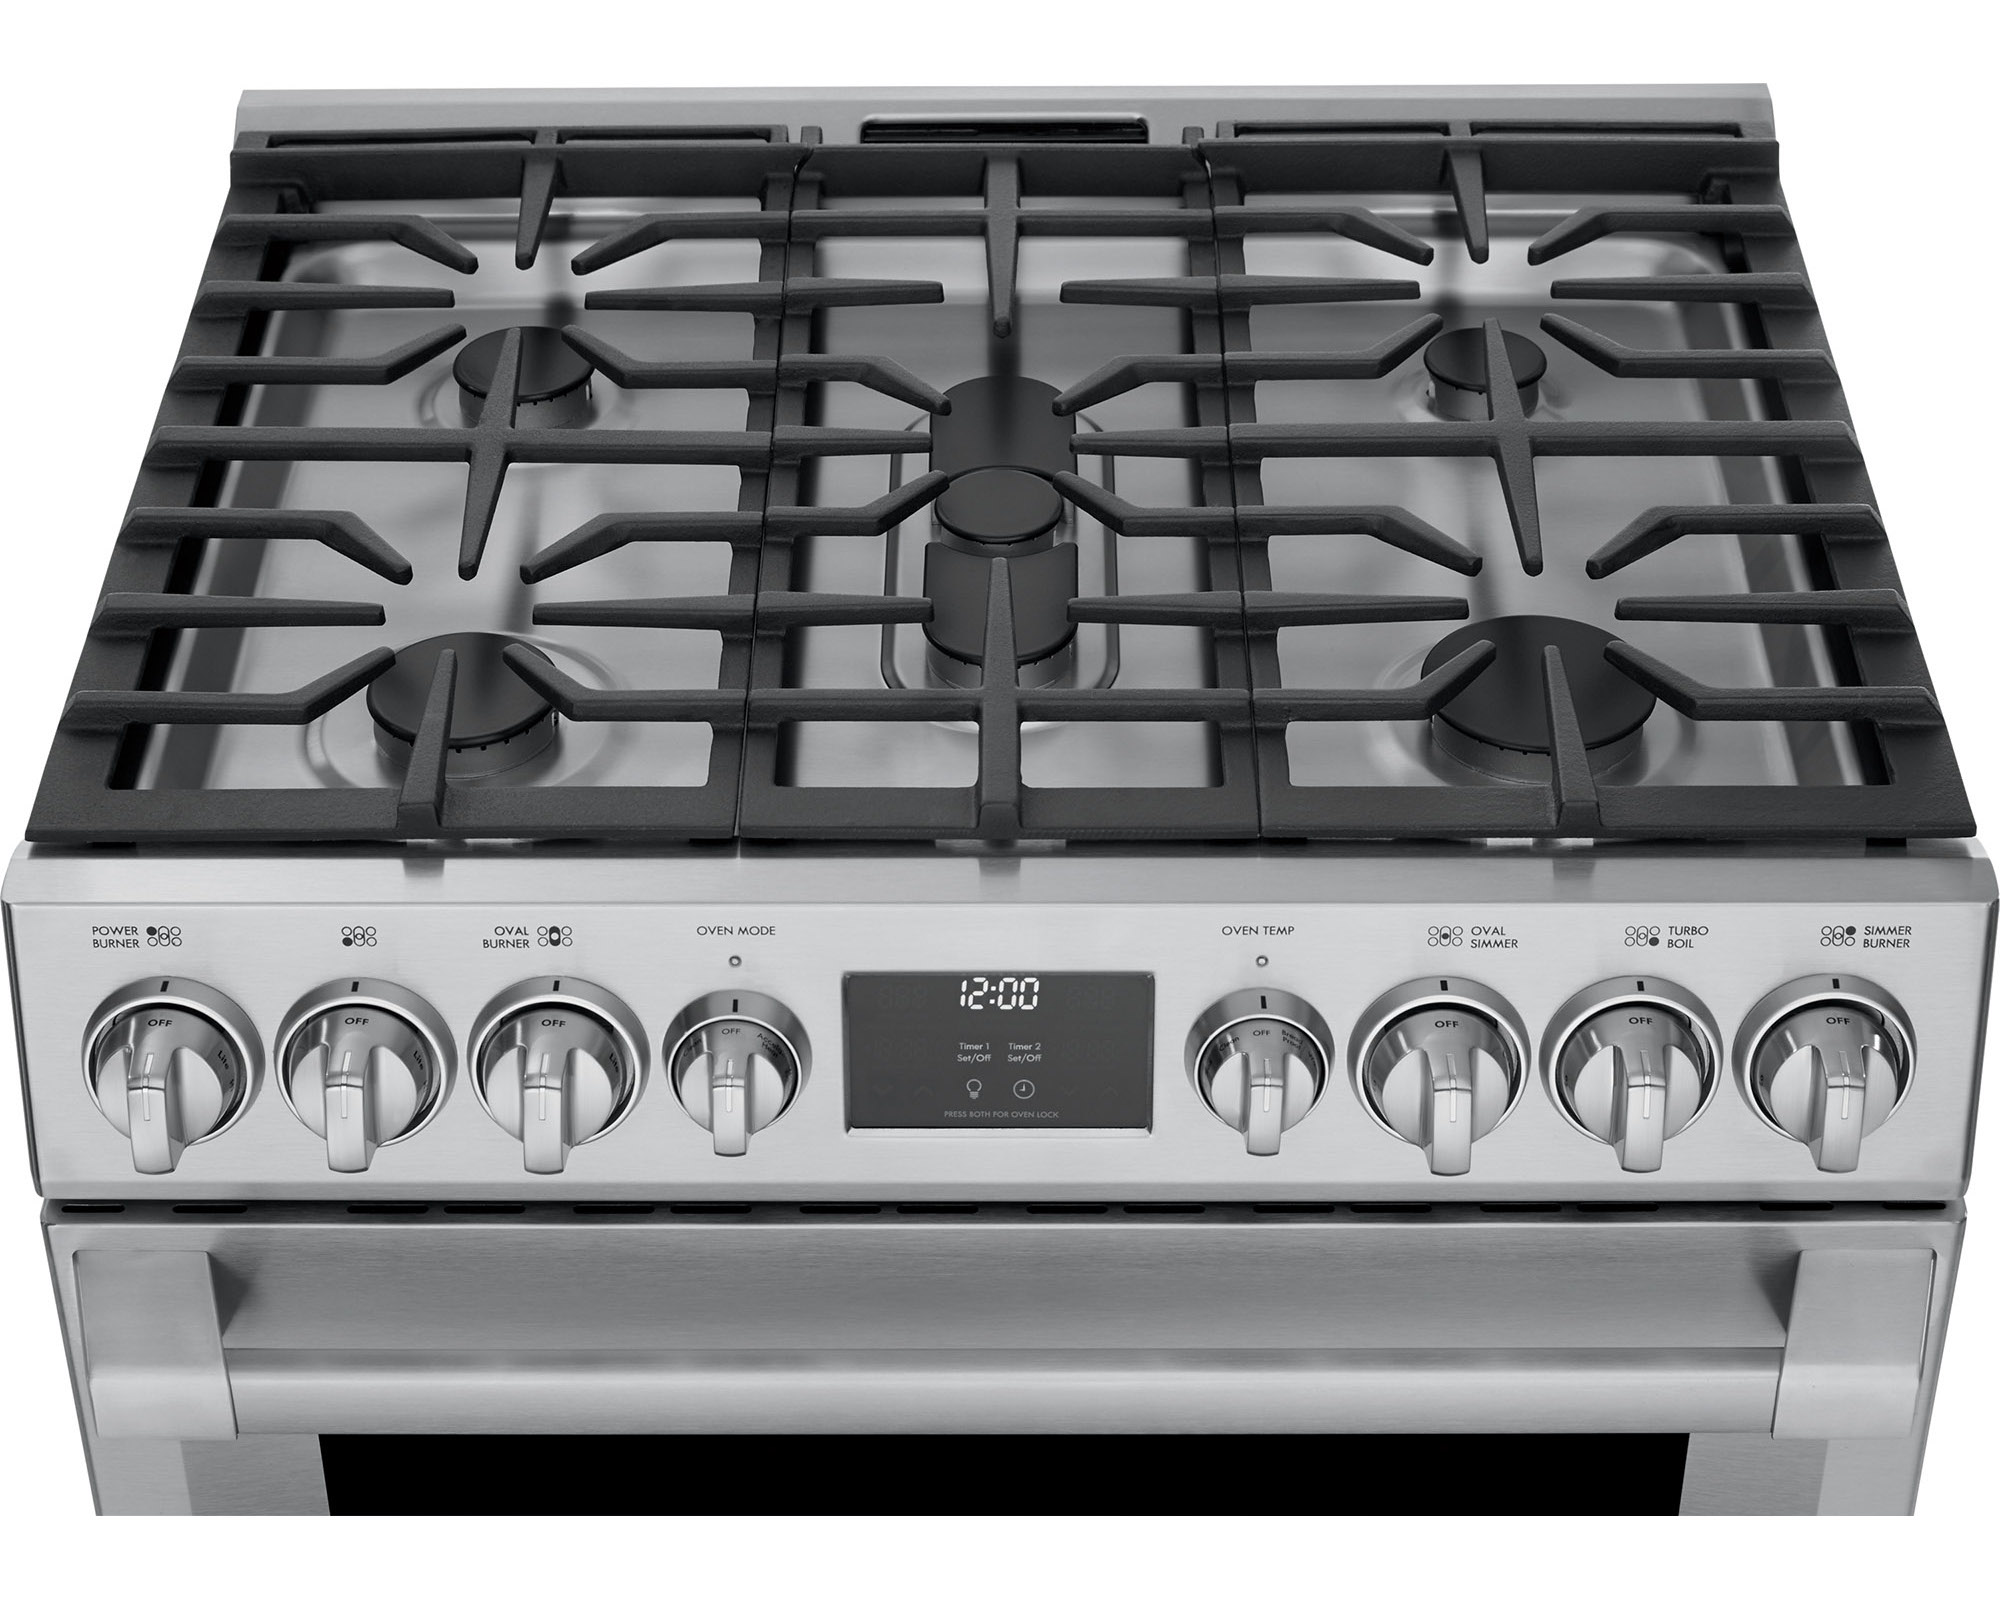 Kenmore Pro 72583 5.1 cu. ft. Self-Clean Gas True Convection Range - Stainless Steel